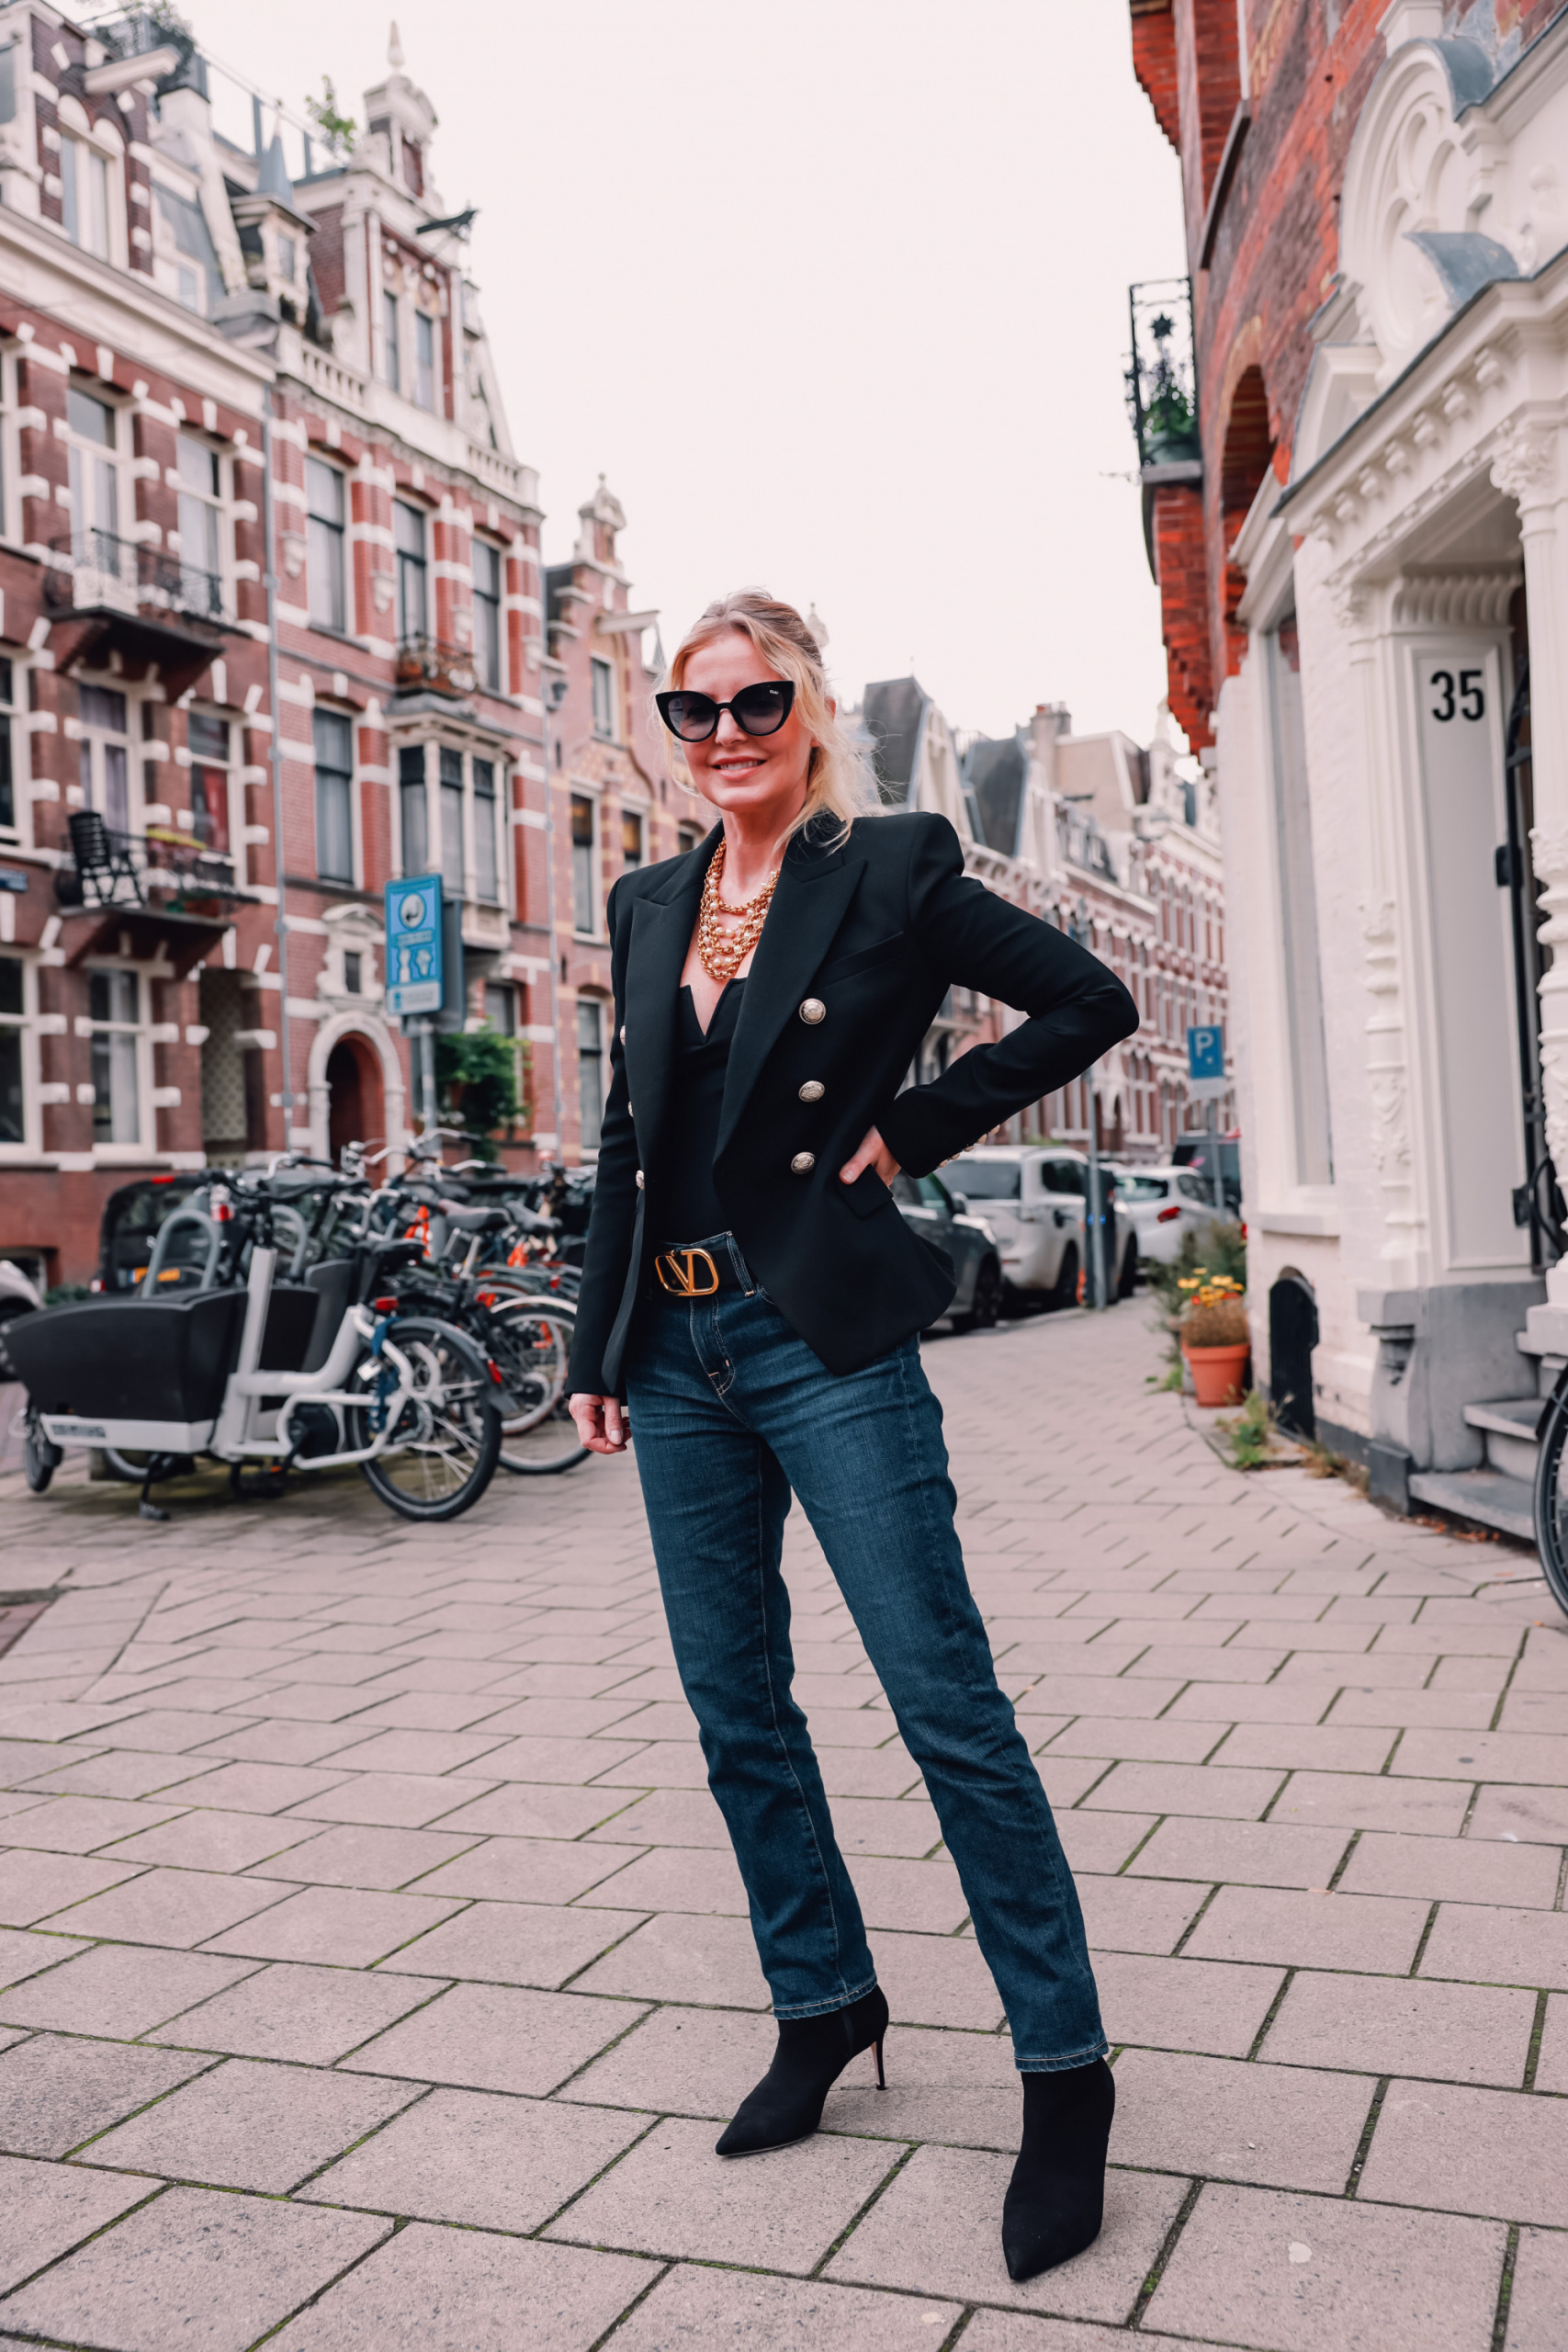 relaxed fit jeans by AG on fashion blogger over 40 Erin Busbee of Busbee STyle in Amsterdam Holland